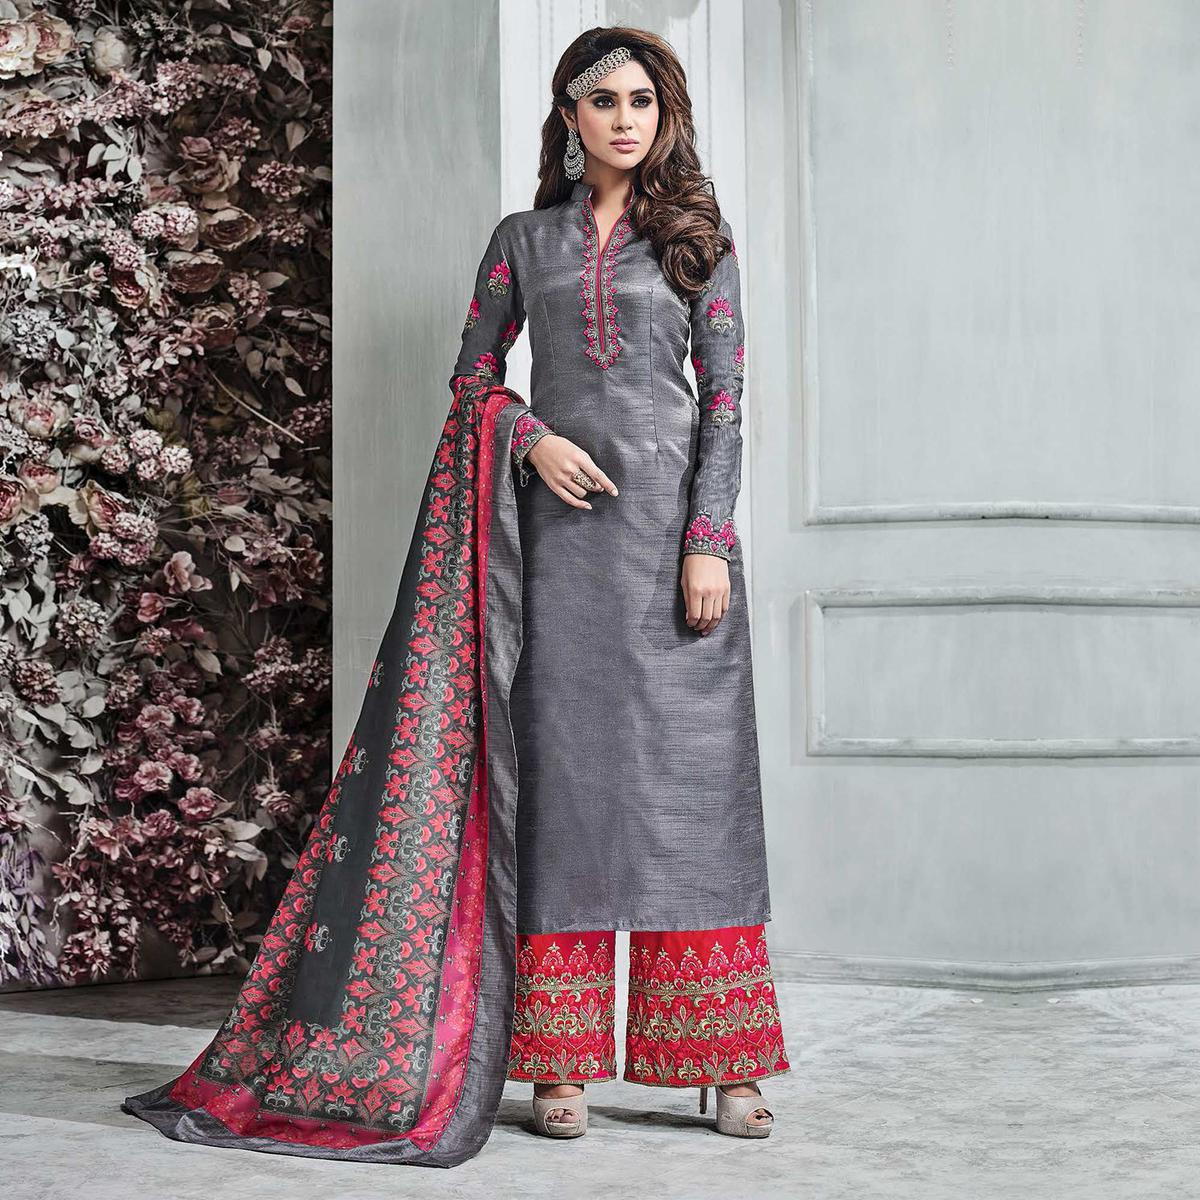 f690326146 Buy Aspiring Gray-Red Colored Partywear Embroidered Banarasi Silk Palazzo  Suit for womens online India, Best Prices, Reviews - Peachmode